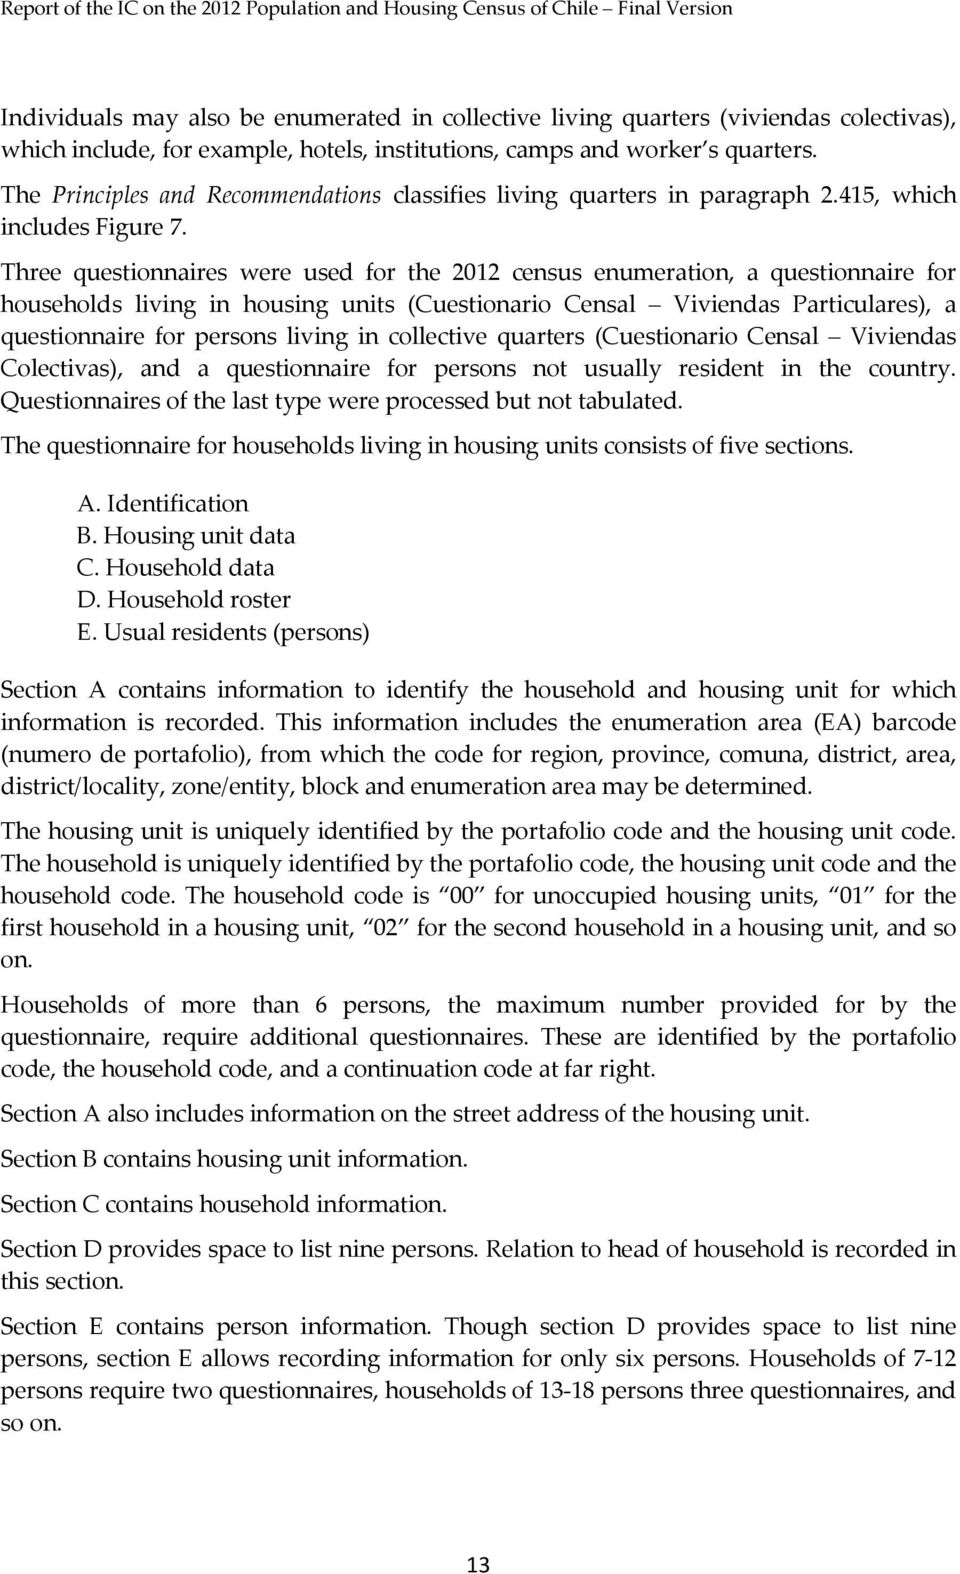 Three questionnaires were used for the 2012 census enumeration, a questionnaire for households living in housing units (Cuestionario Censal Viviendas Particulares), a questionnaire for persons living